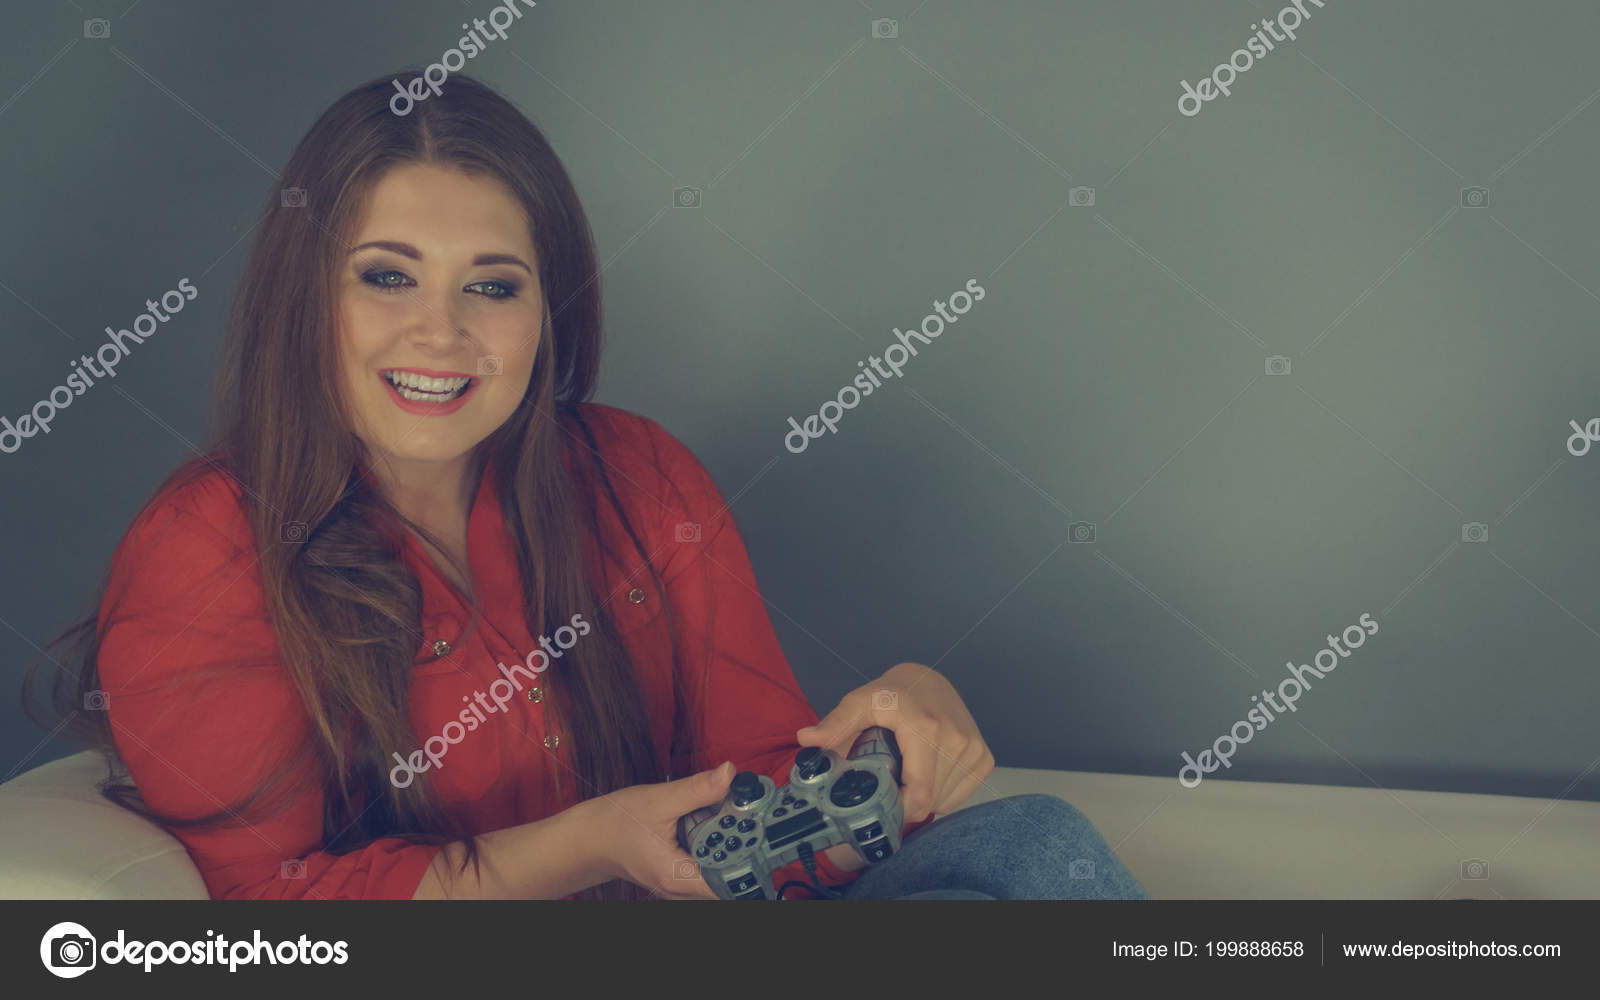 Nerd Geek Young Adult Women Playing Video Console Holding Game — Stock Photo